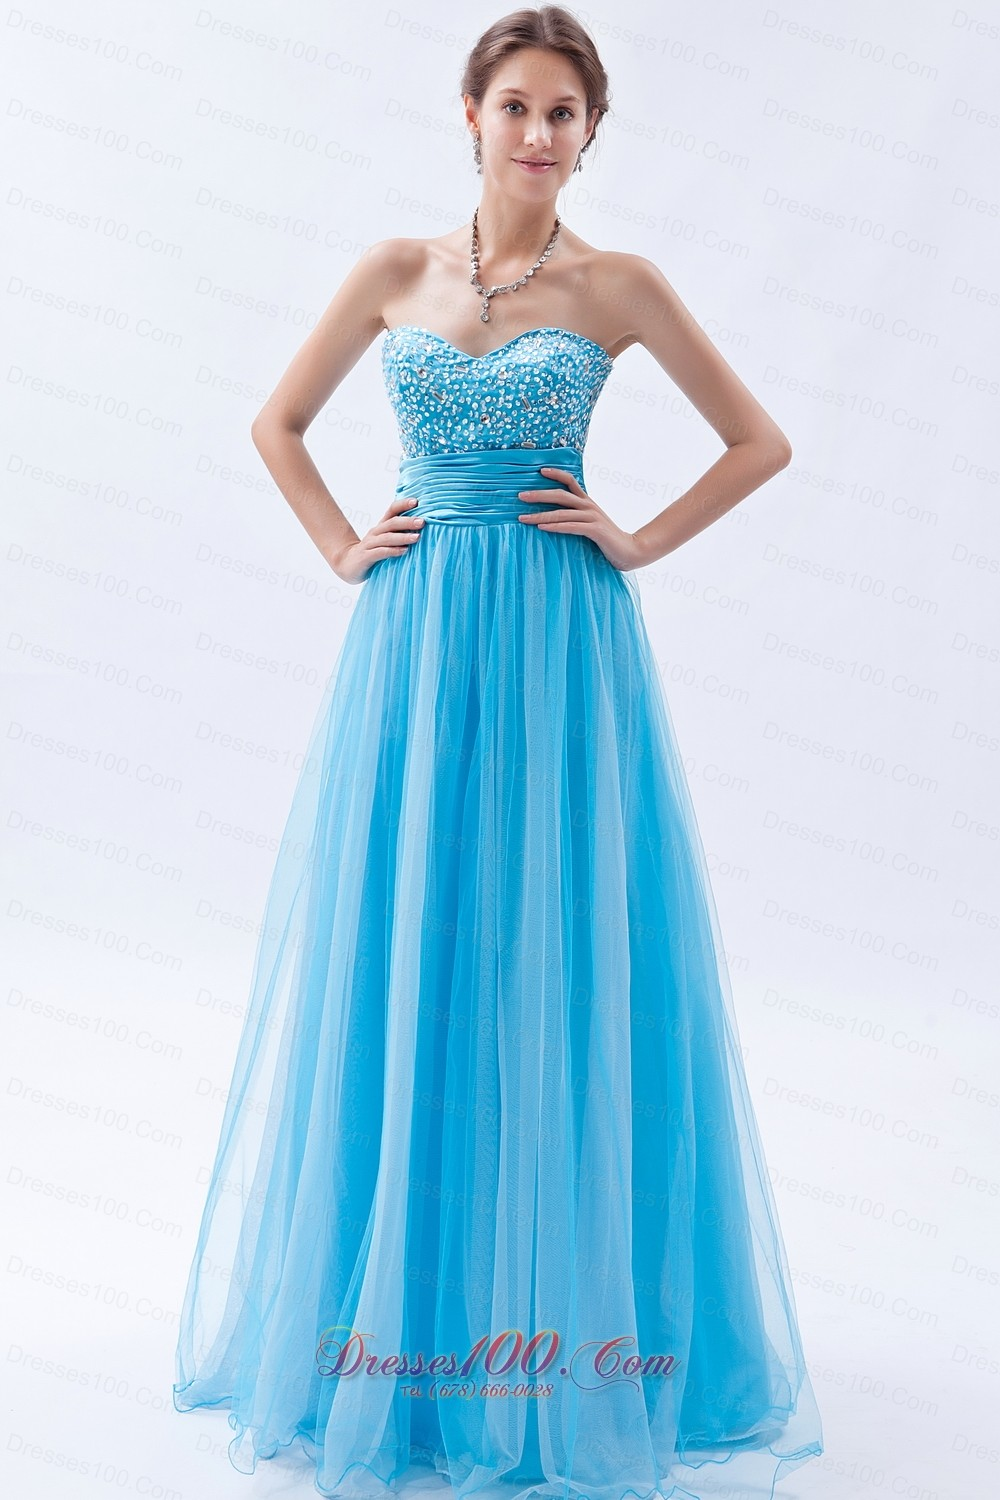 Baby Blue Tulle Princess Prom Dress Beadings Ruched |Perfect Prom ...